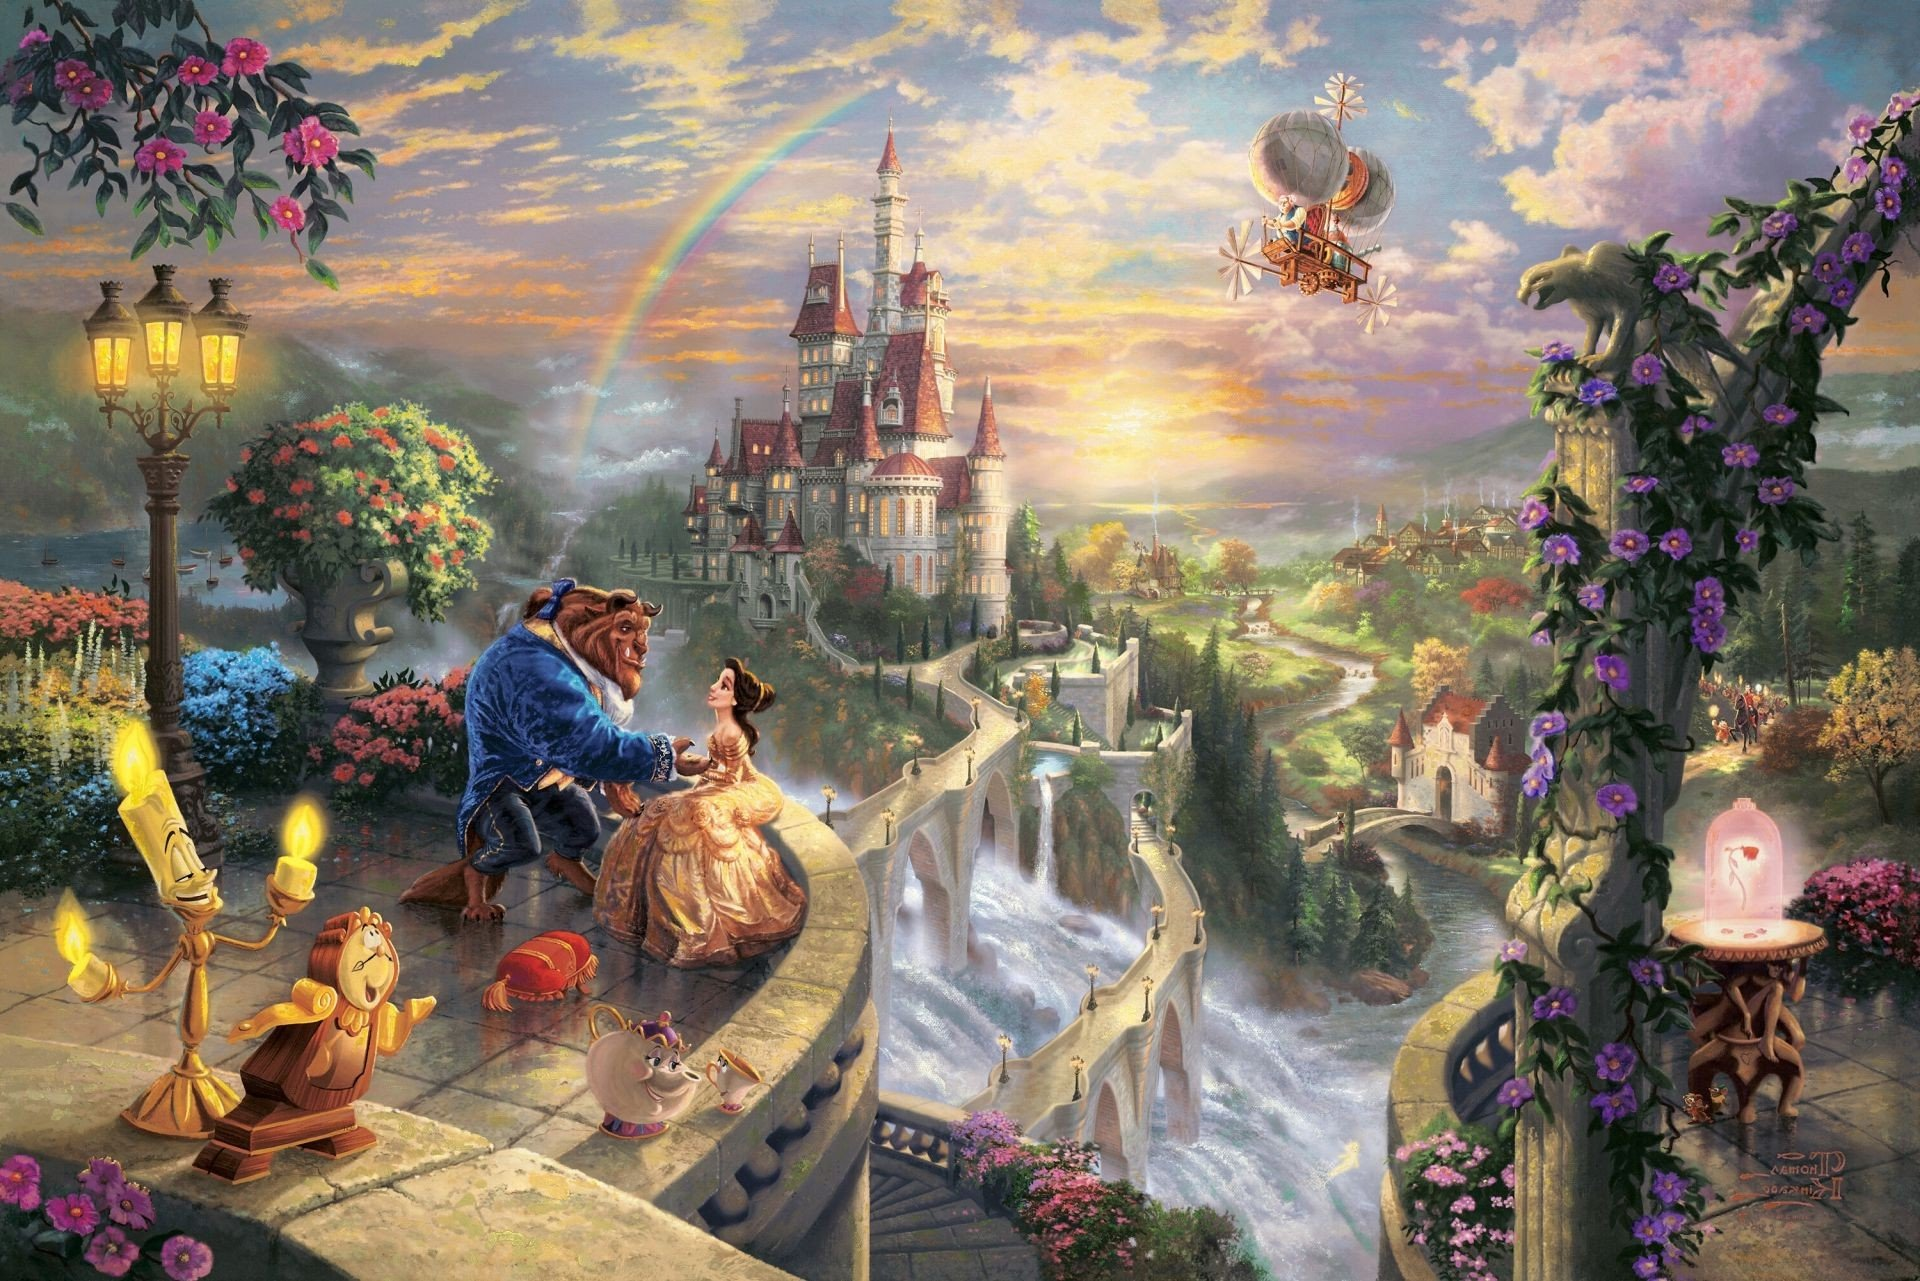 Thomas Kinkade Disney Wallpaper | Free | Download